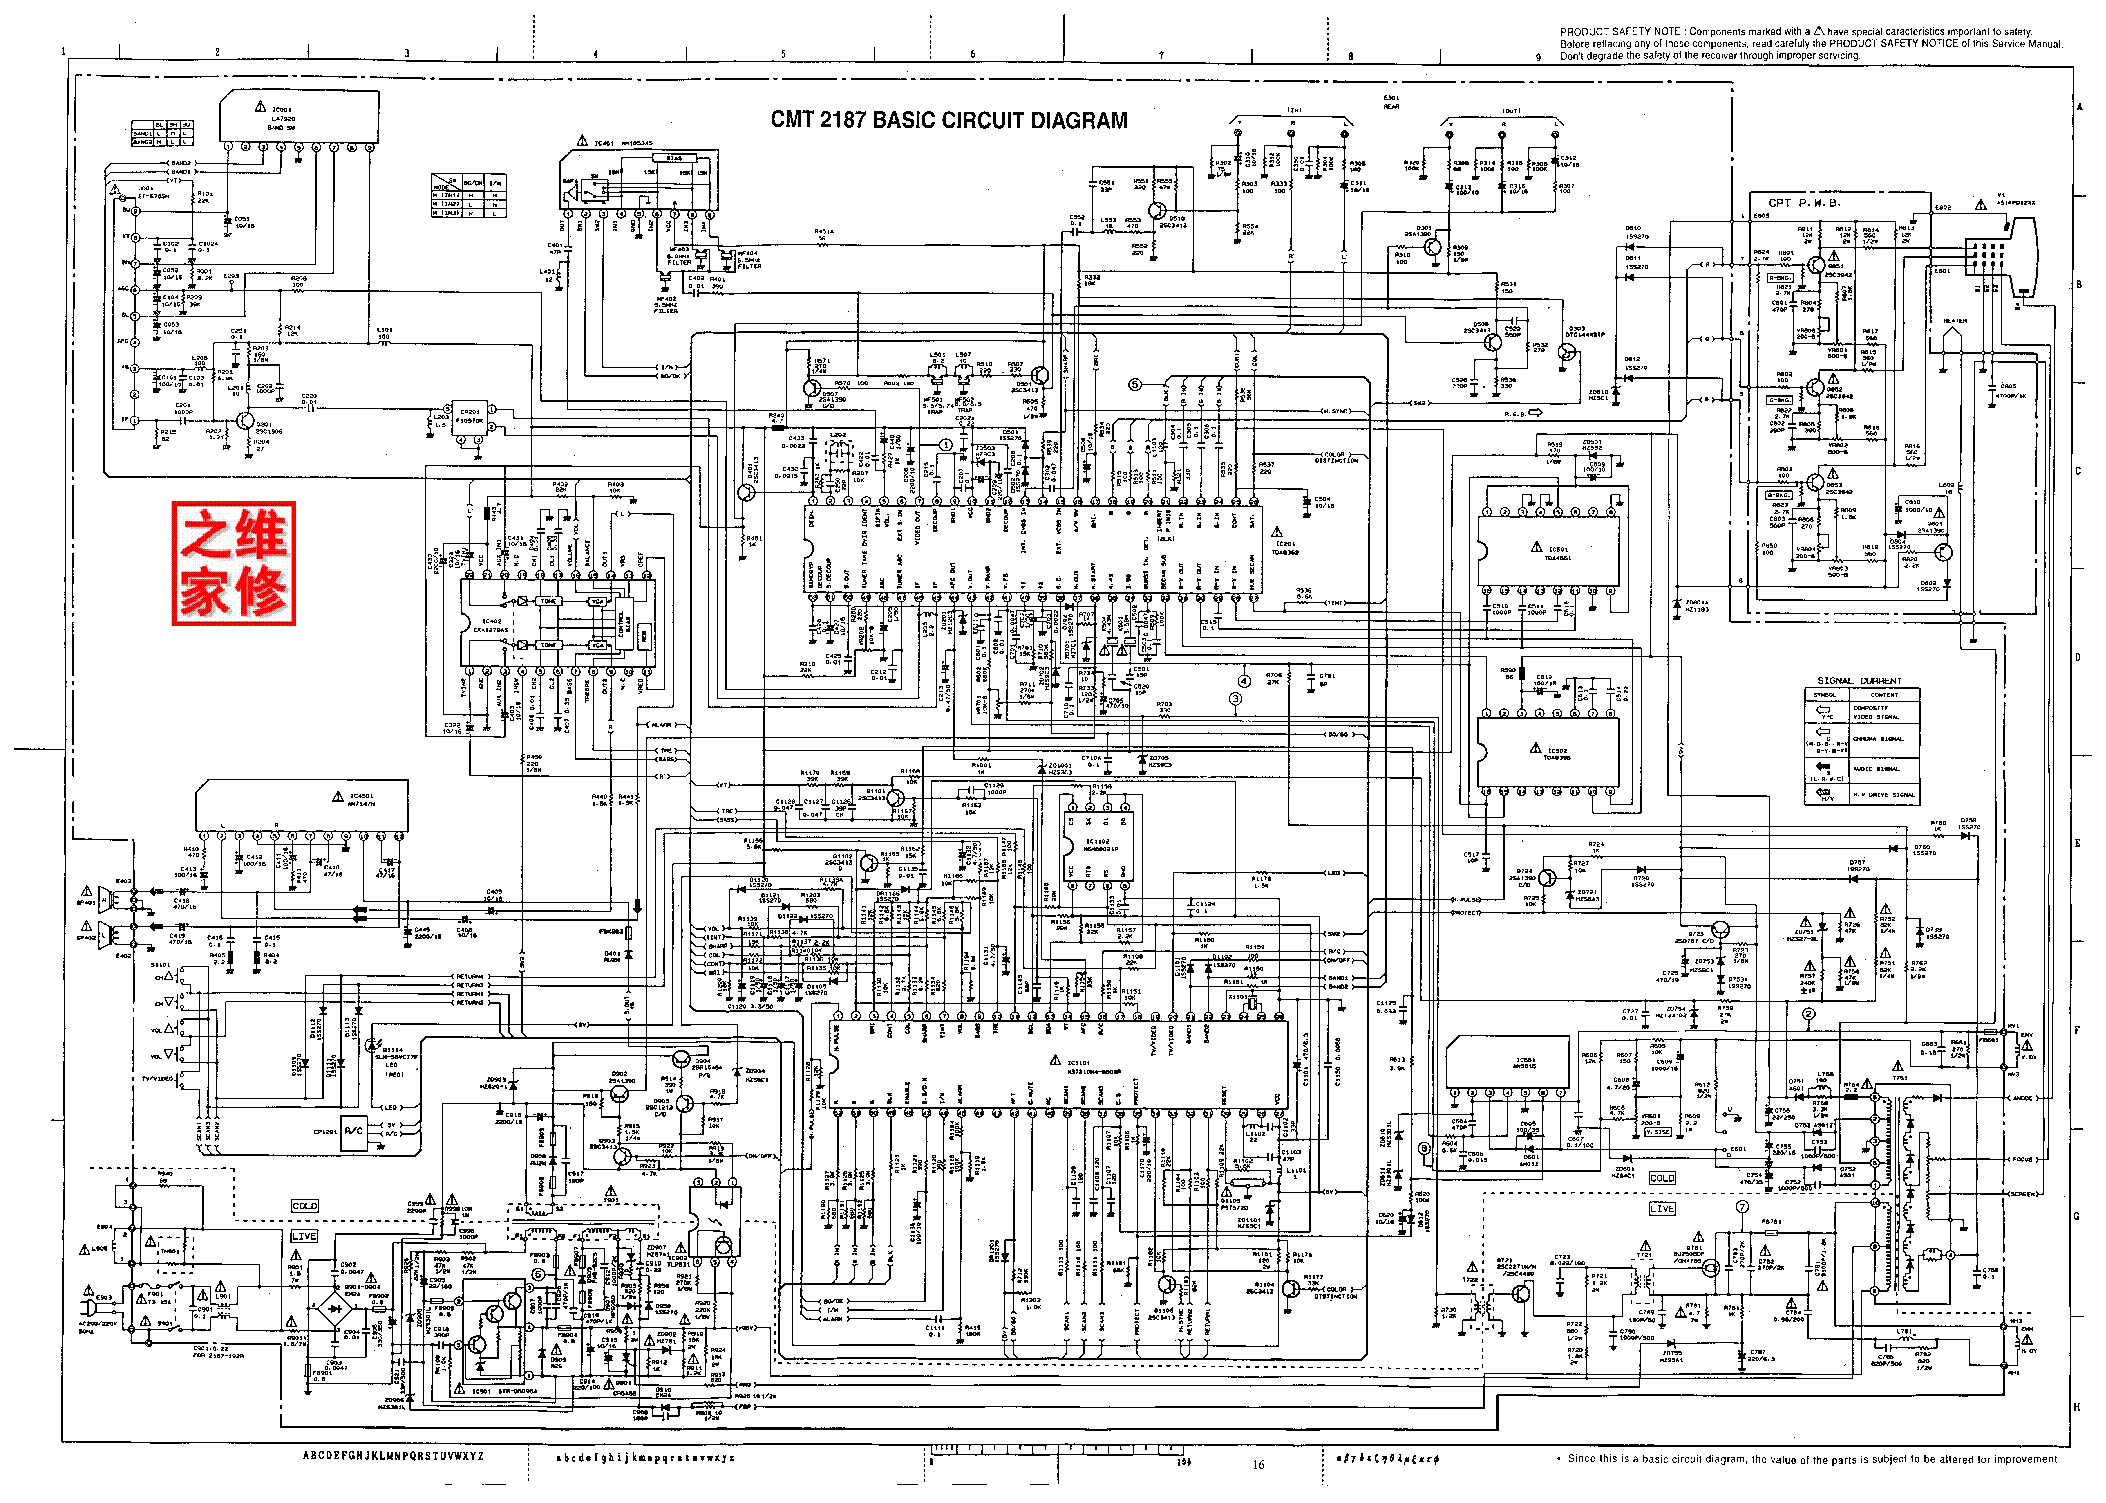 Tv Circuit Diagram Pdf - wiring diagrams